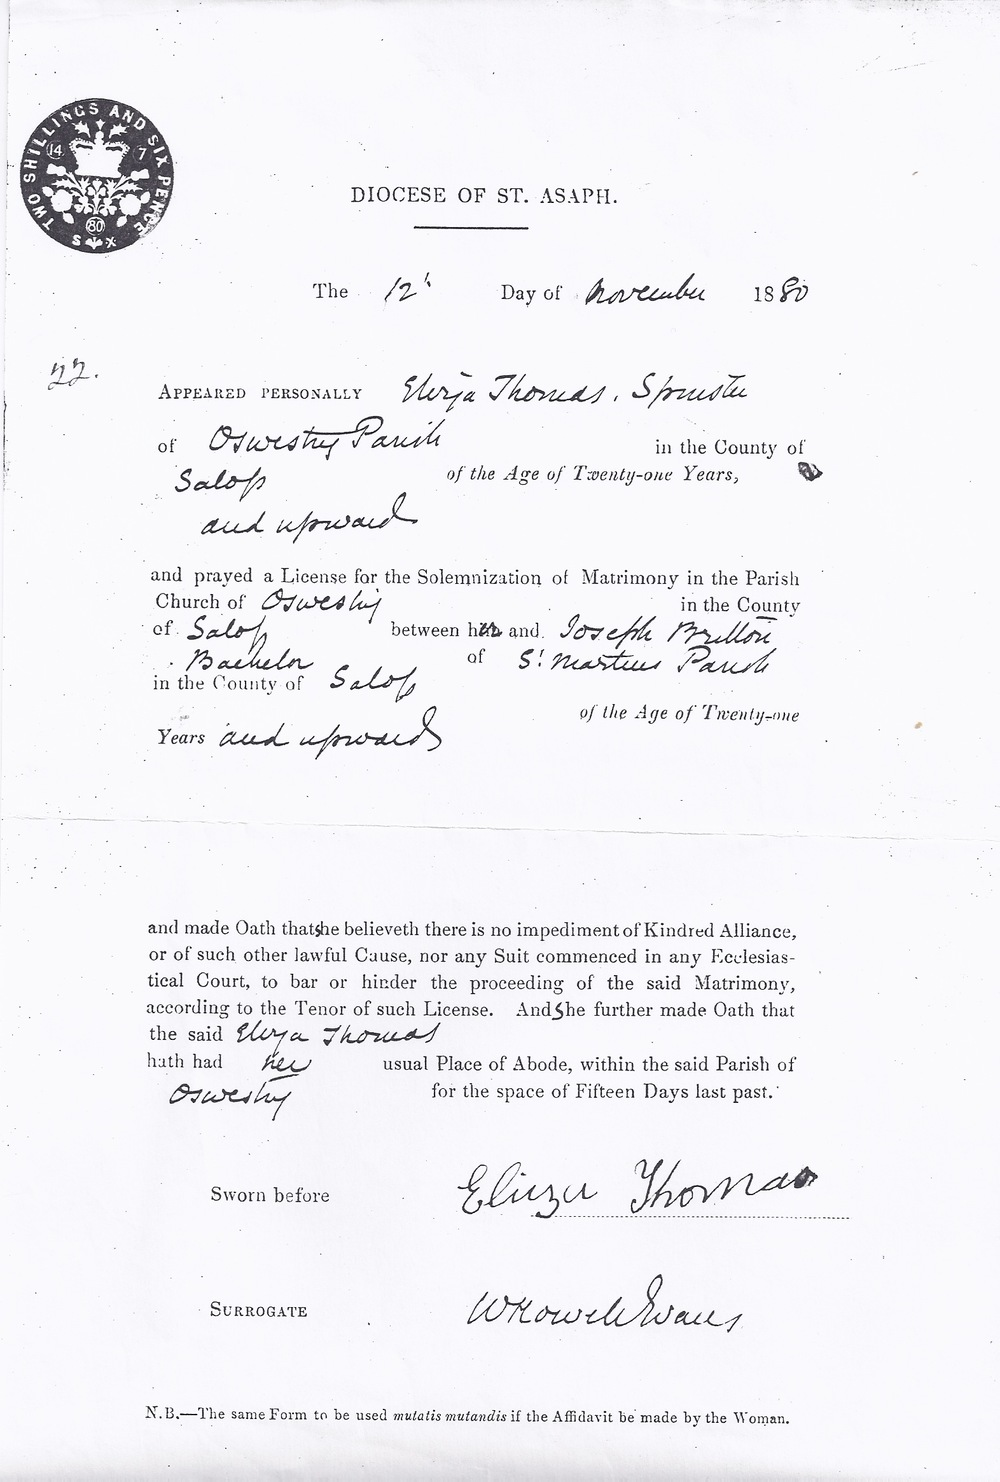 Marriage Licence for Joseph Britton and Eliza Thomas